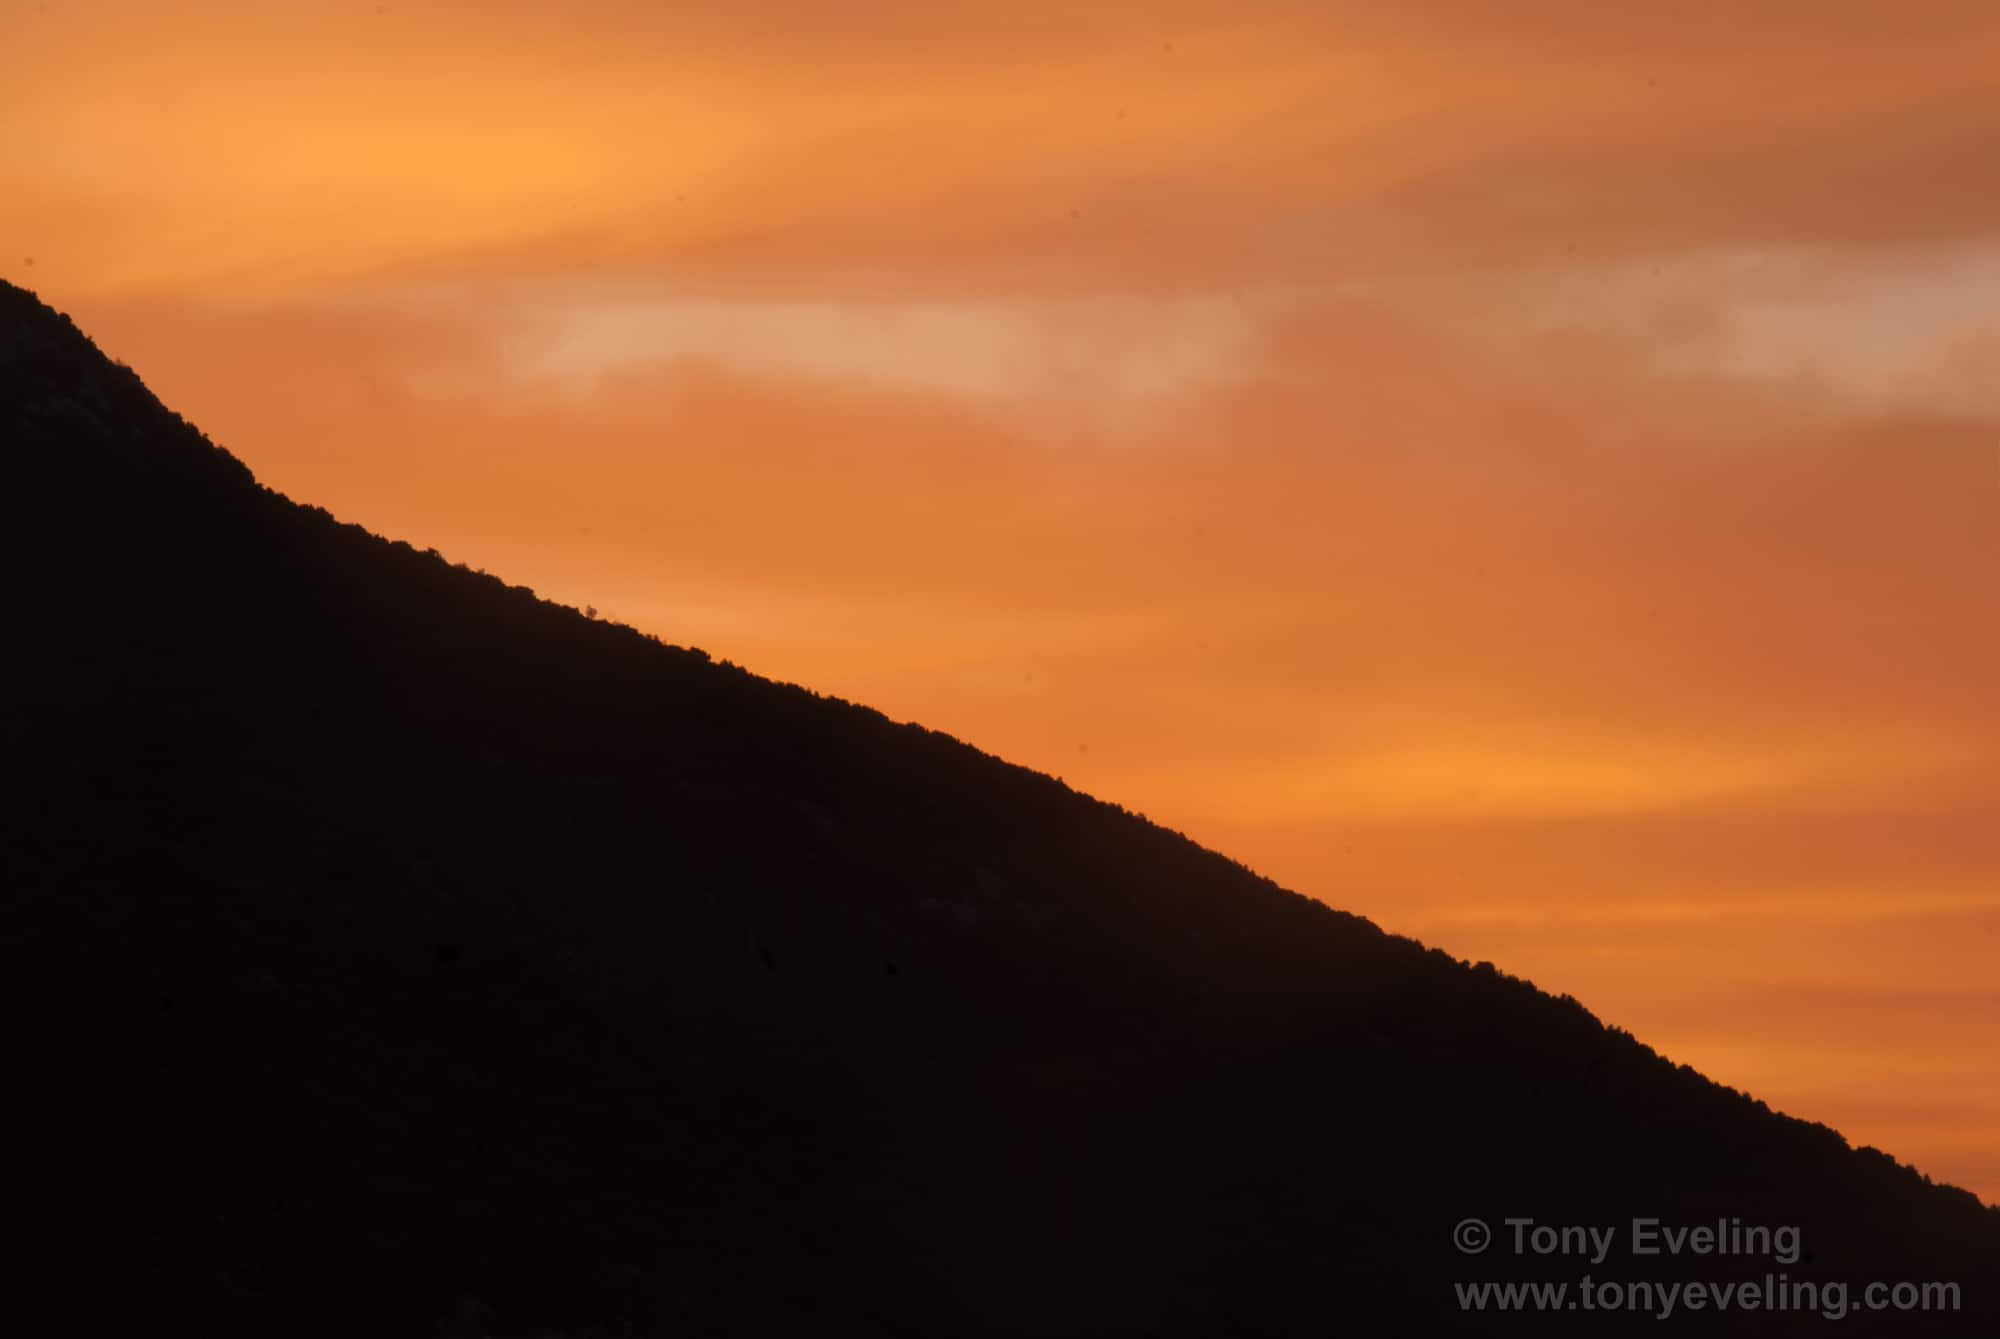 Croatian dawn sky and silhouetted mountainside